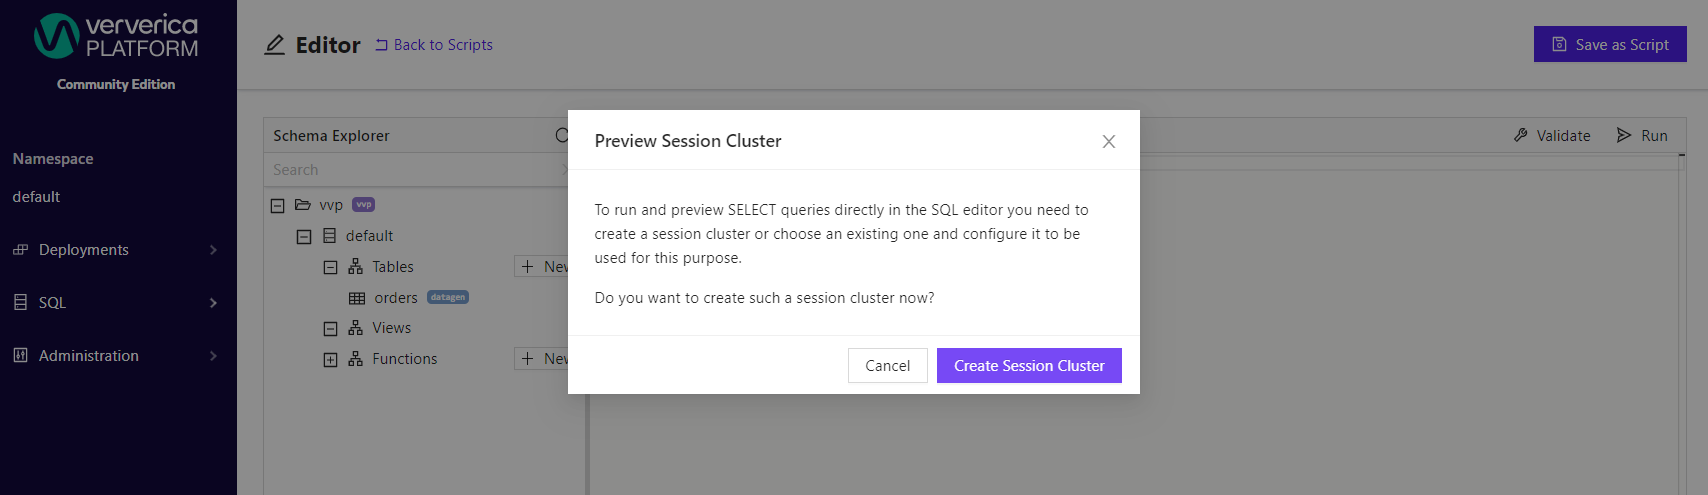 No Preview Session Cluster